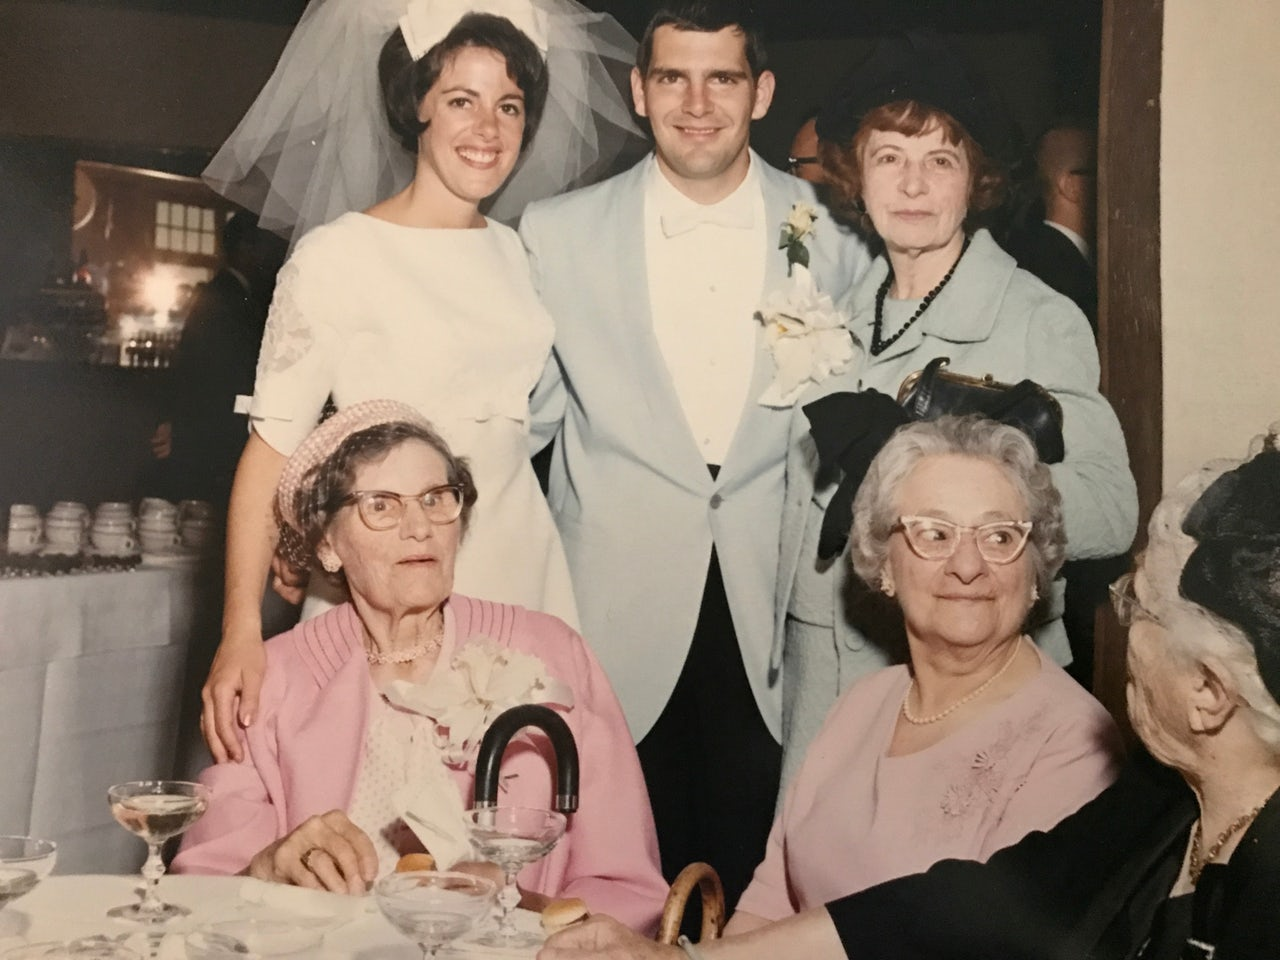 Inez Burns (standing, on the right) at a family wedding in 1965.